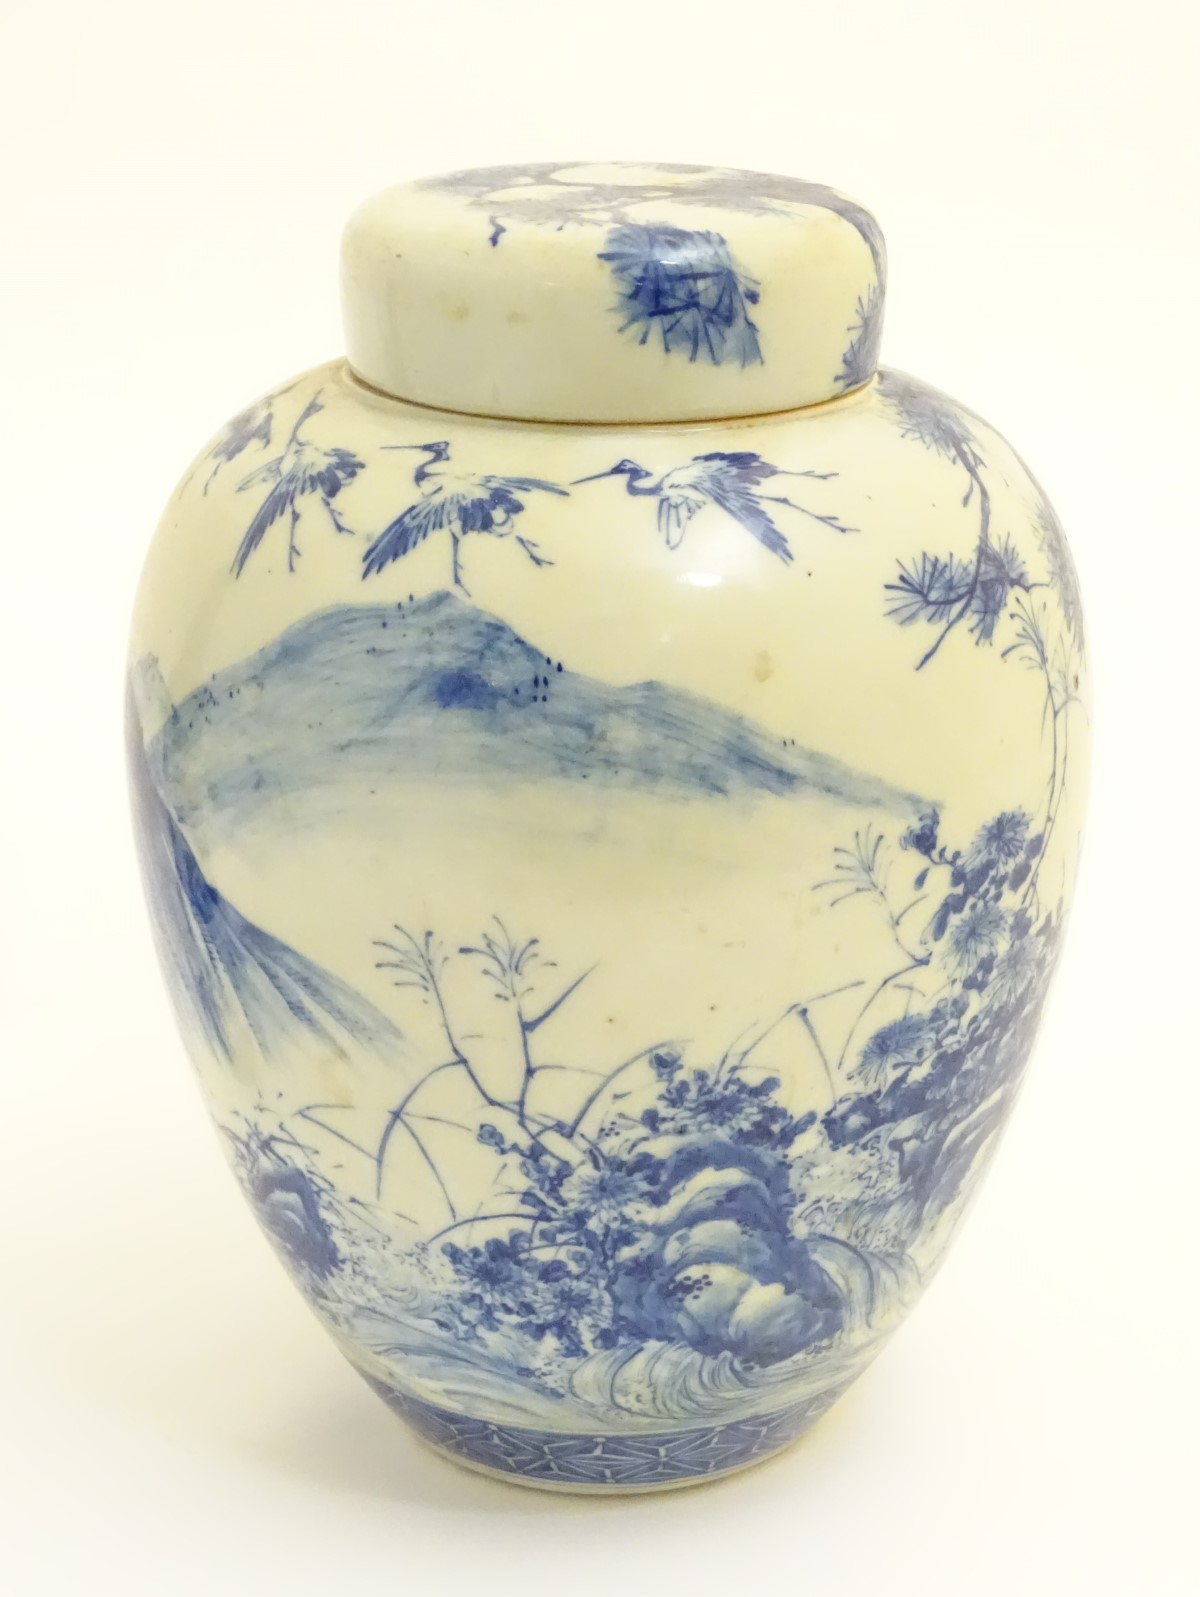 Lot 31 - A large blue and white Japanese lidded ginger jar decorated with a sage sat by a tree in a